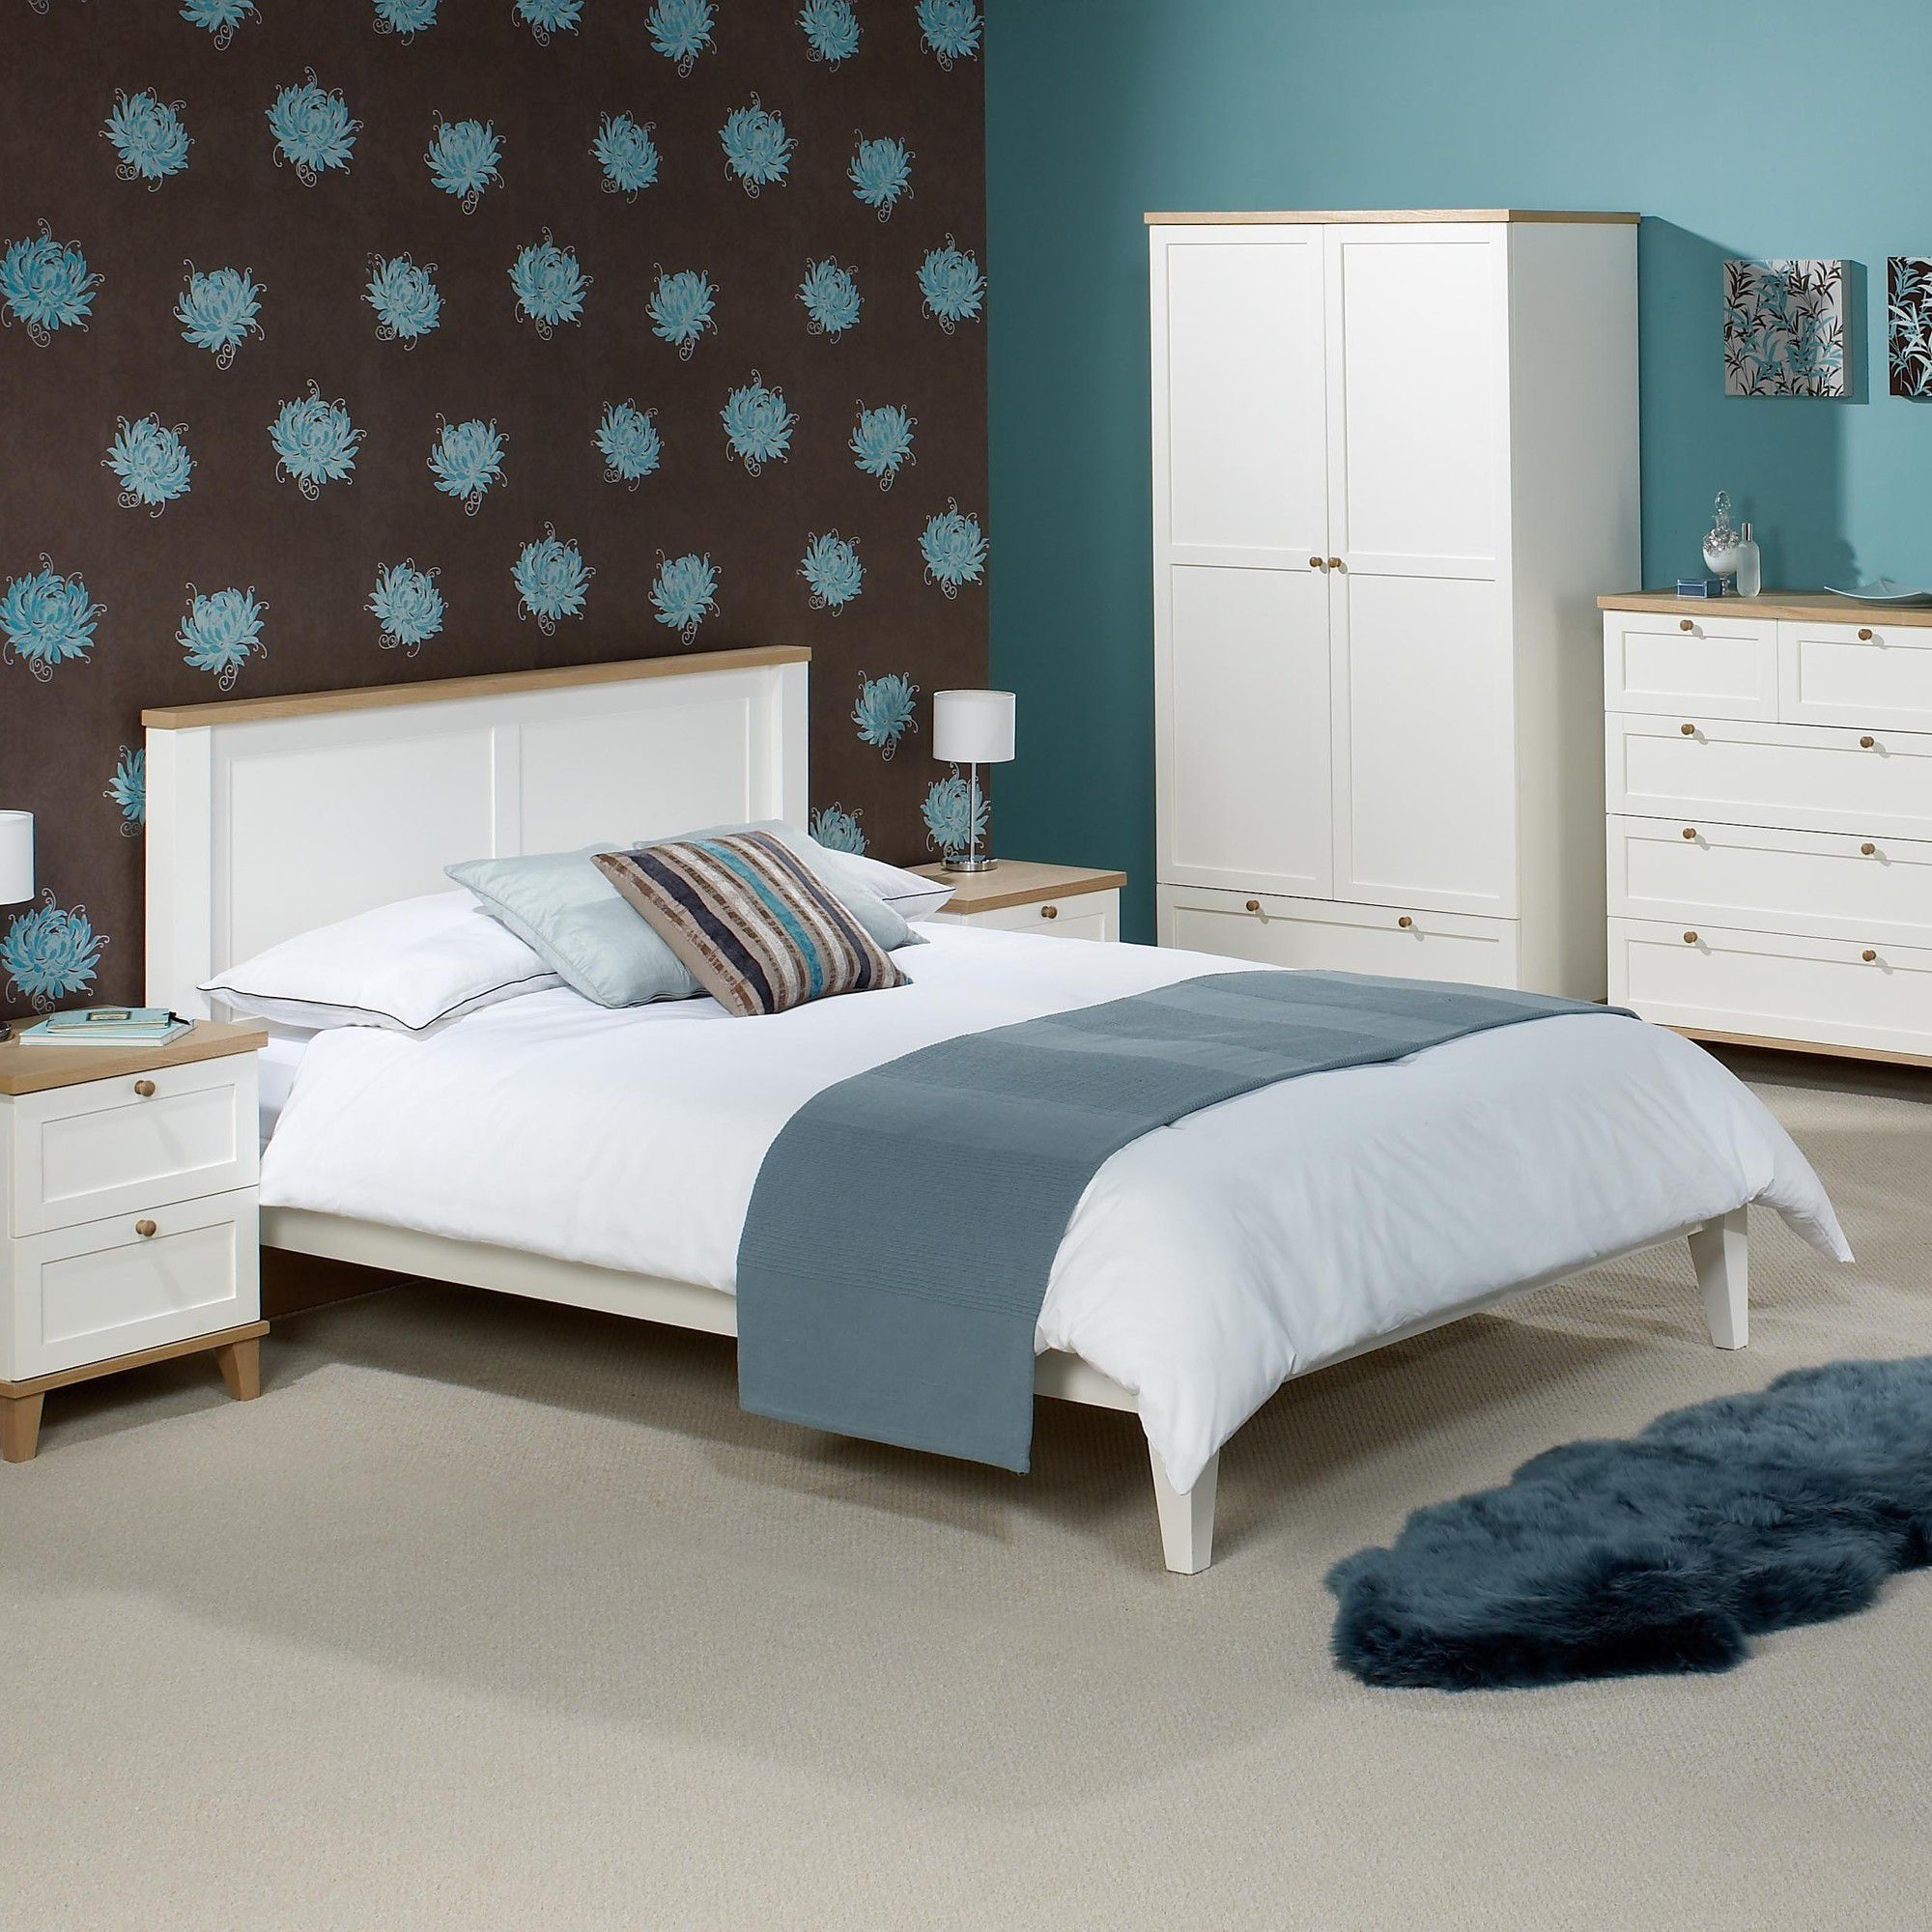 Home Zone Chicago Bed Frame - Kingsize at Tesco Direct